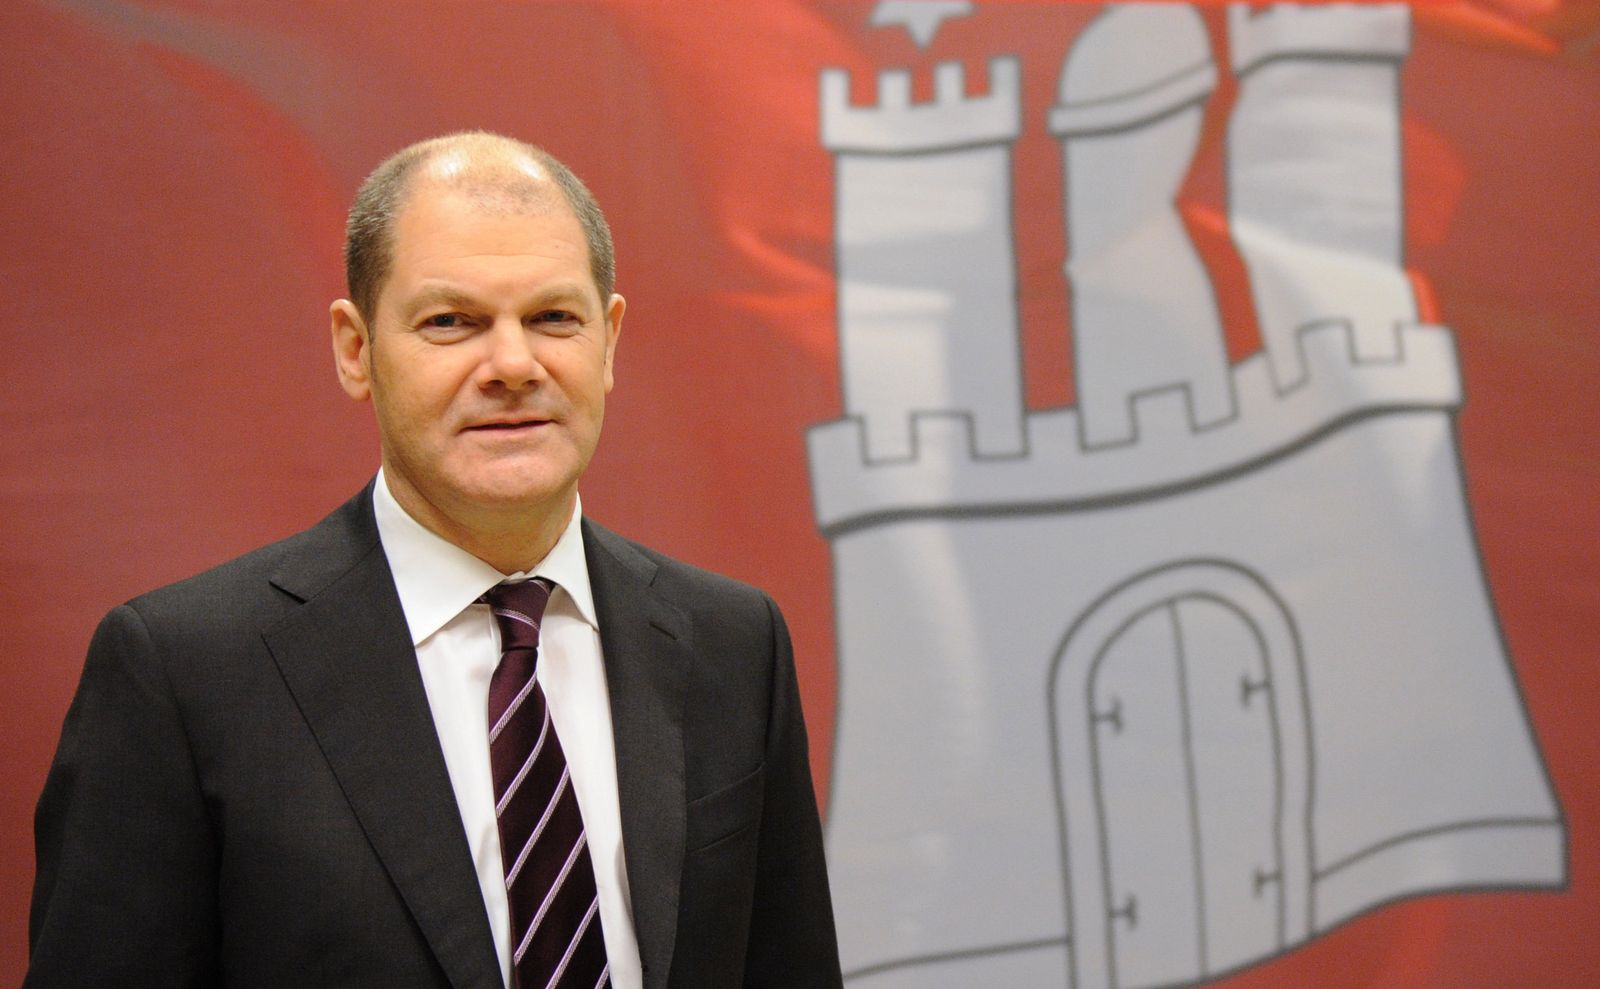 HH Wahlen / Olaf Scholz